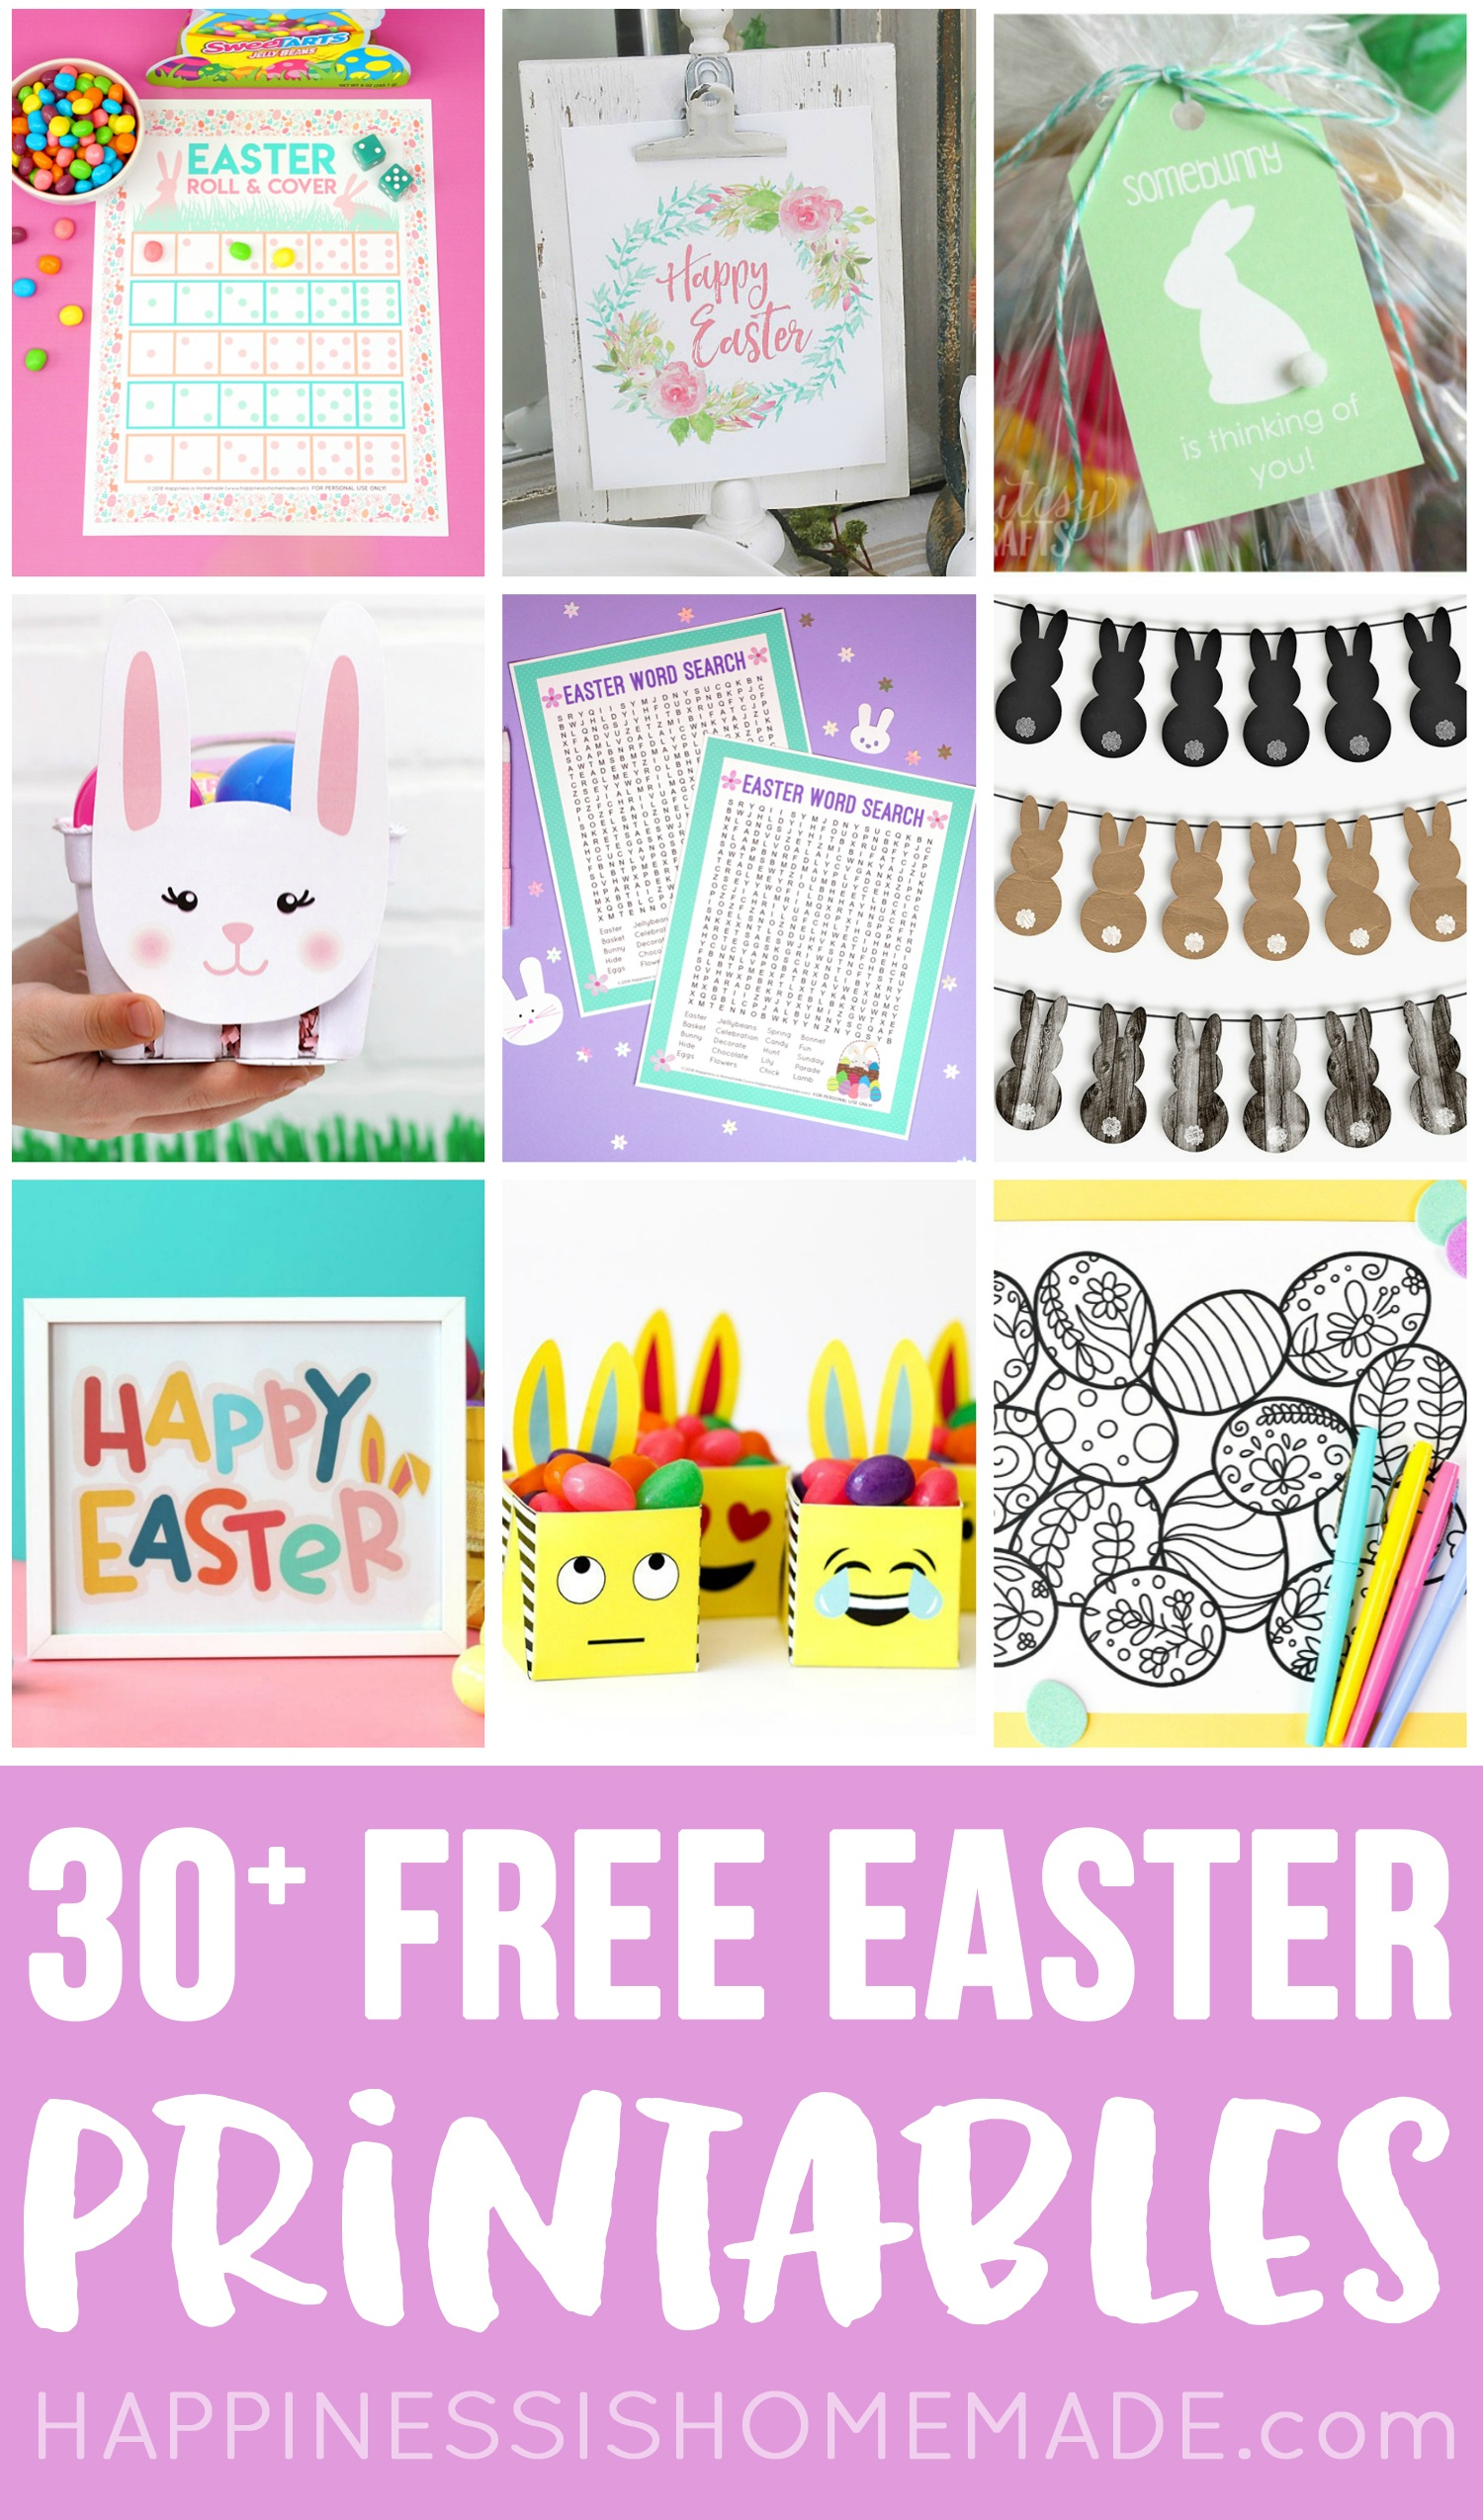 30+ Totally Free Easter Printables - Happiness Is Homemade - Free Printable Easter Basket Name Tags